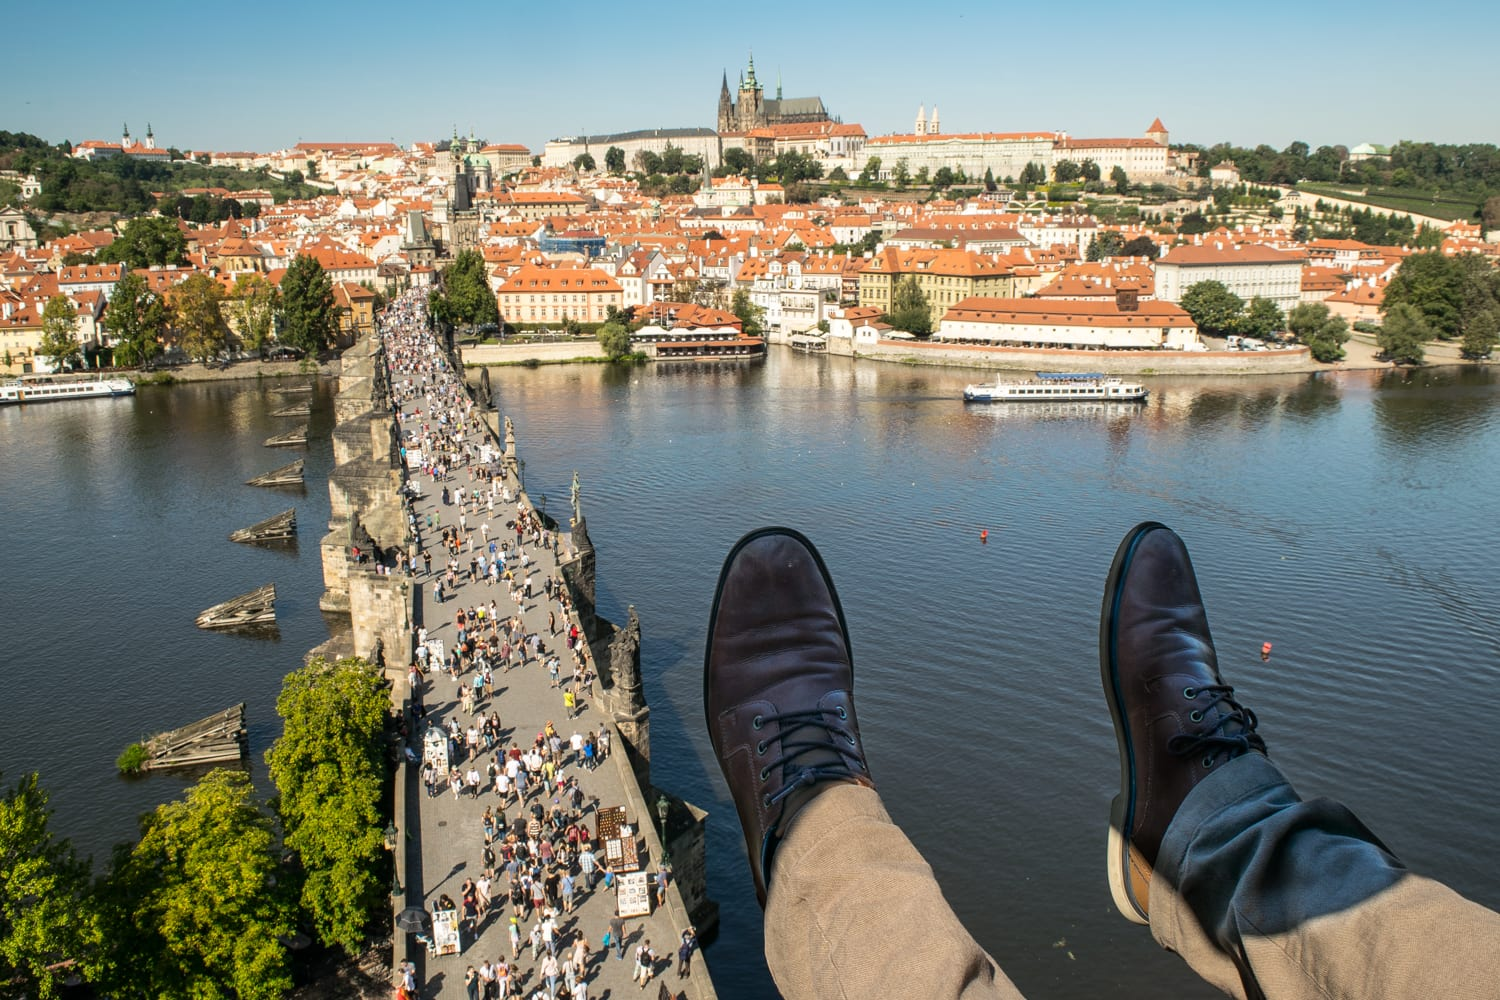 jeremy storms feet overlooking charles bridge from a tower one of the best views in prague and cheap to access when traveling prague on a budget